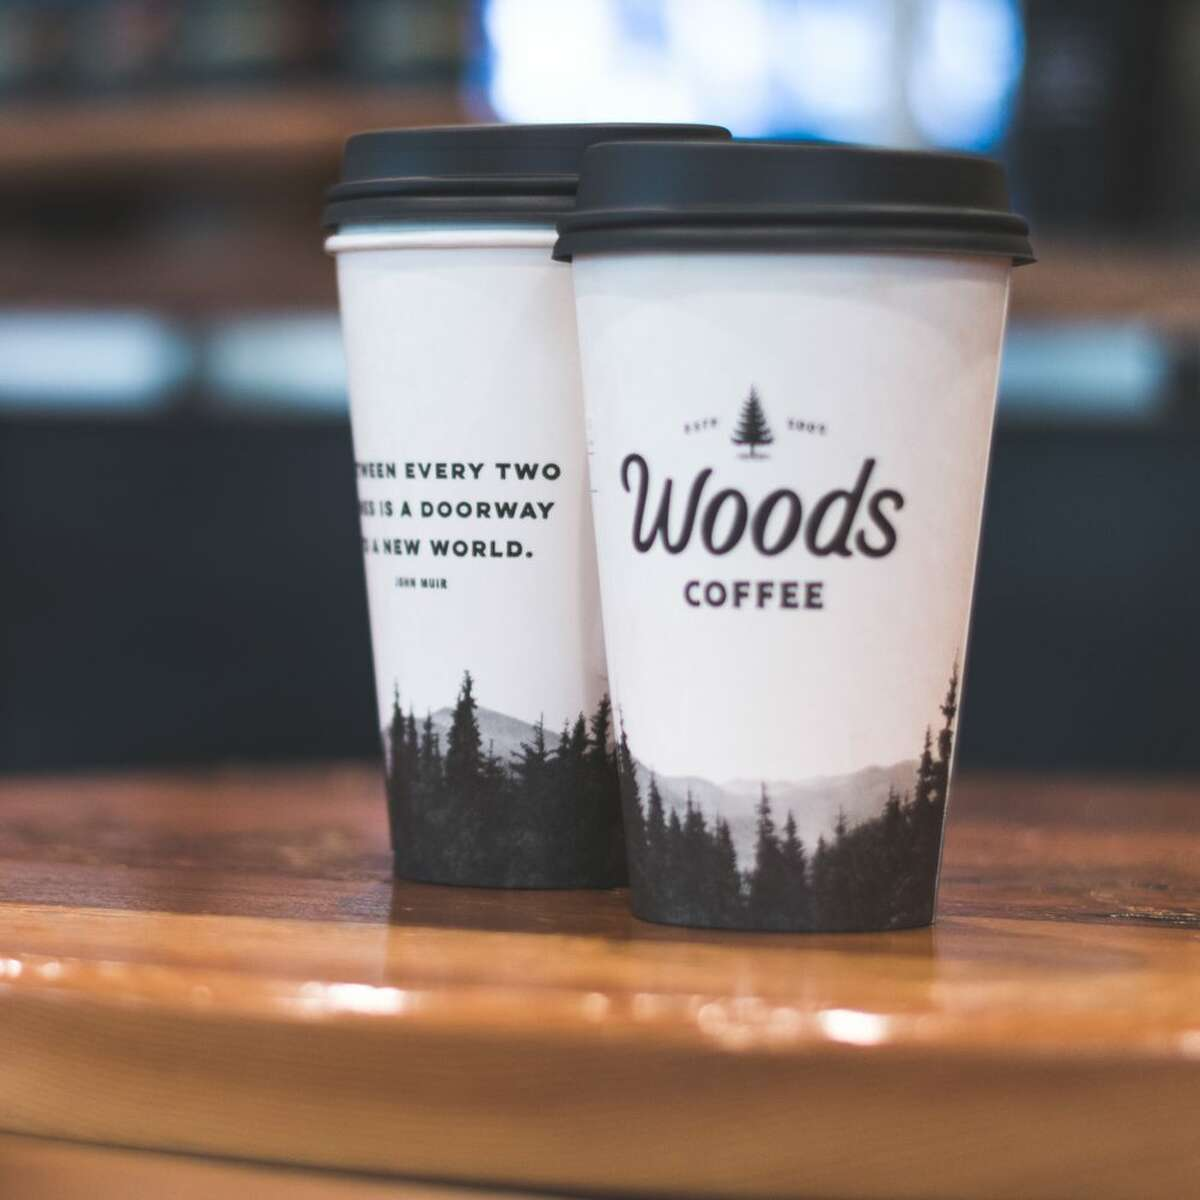 Woods Coffee was established in 2002 by the Herman family of Lynden, Washington. After six months, they opened their second store in the same town, and now has Woods Coffee locations throughout the Pacific Northwest, located in Whatcom County, Skagit County, and King County. On the Eastside, you can nab their lightly sweetened PSL without straying too far from town.